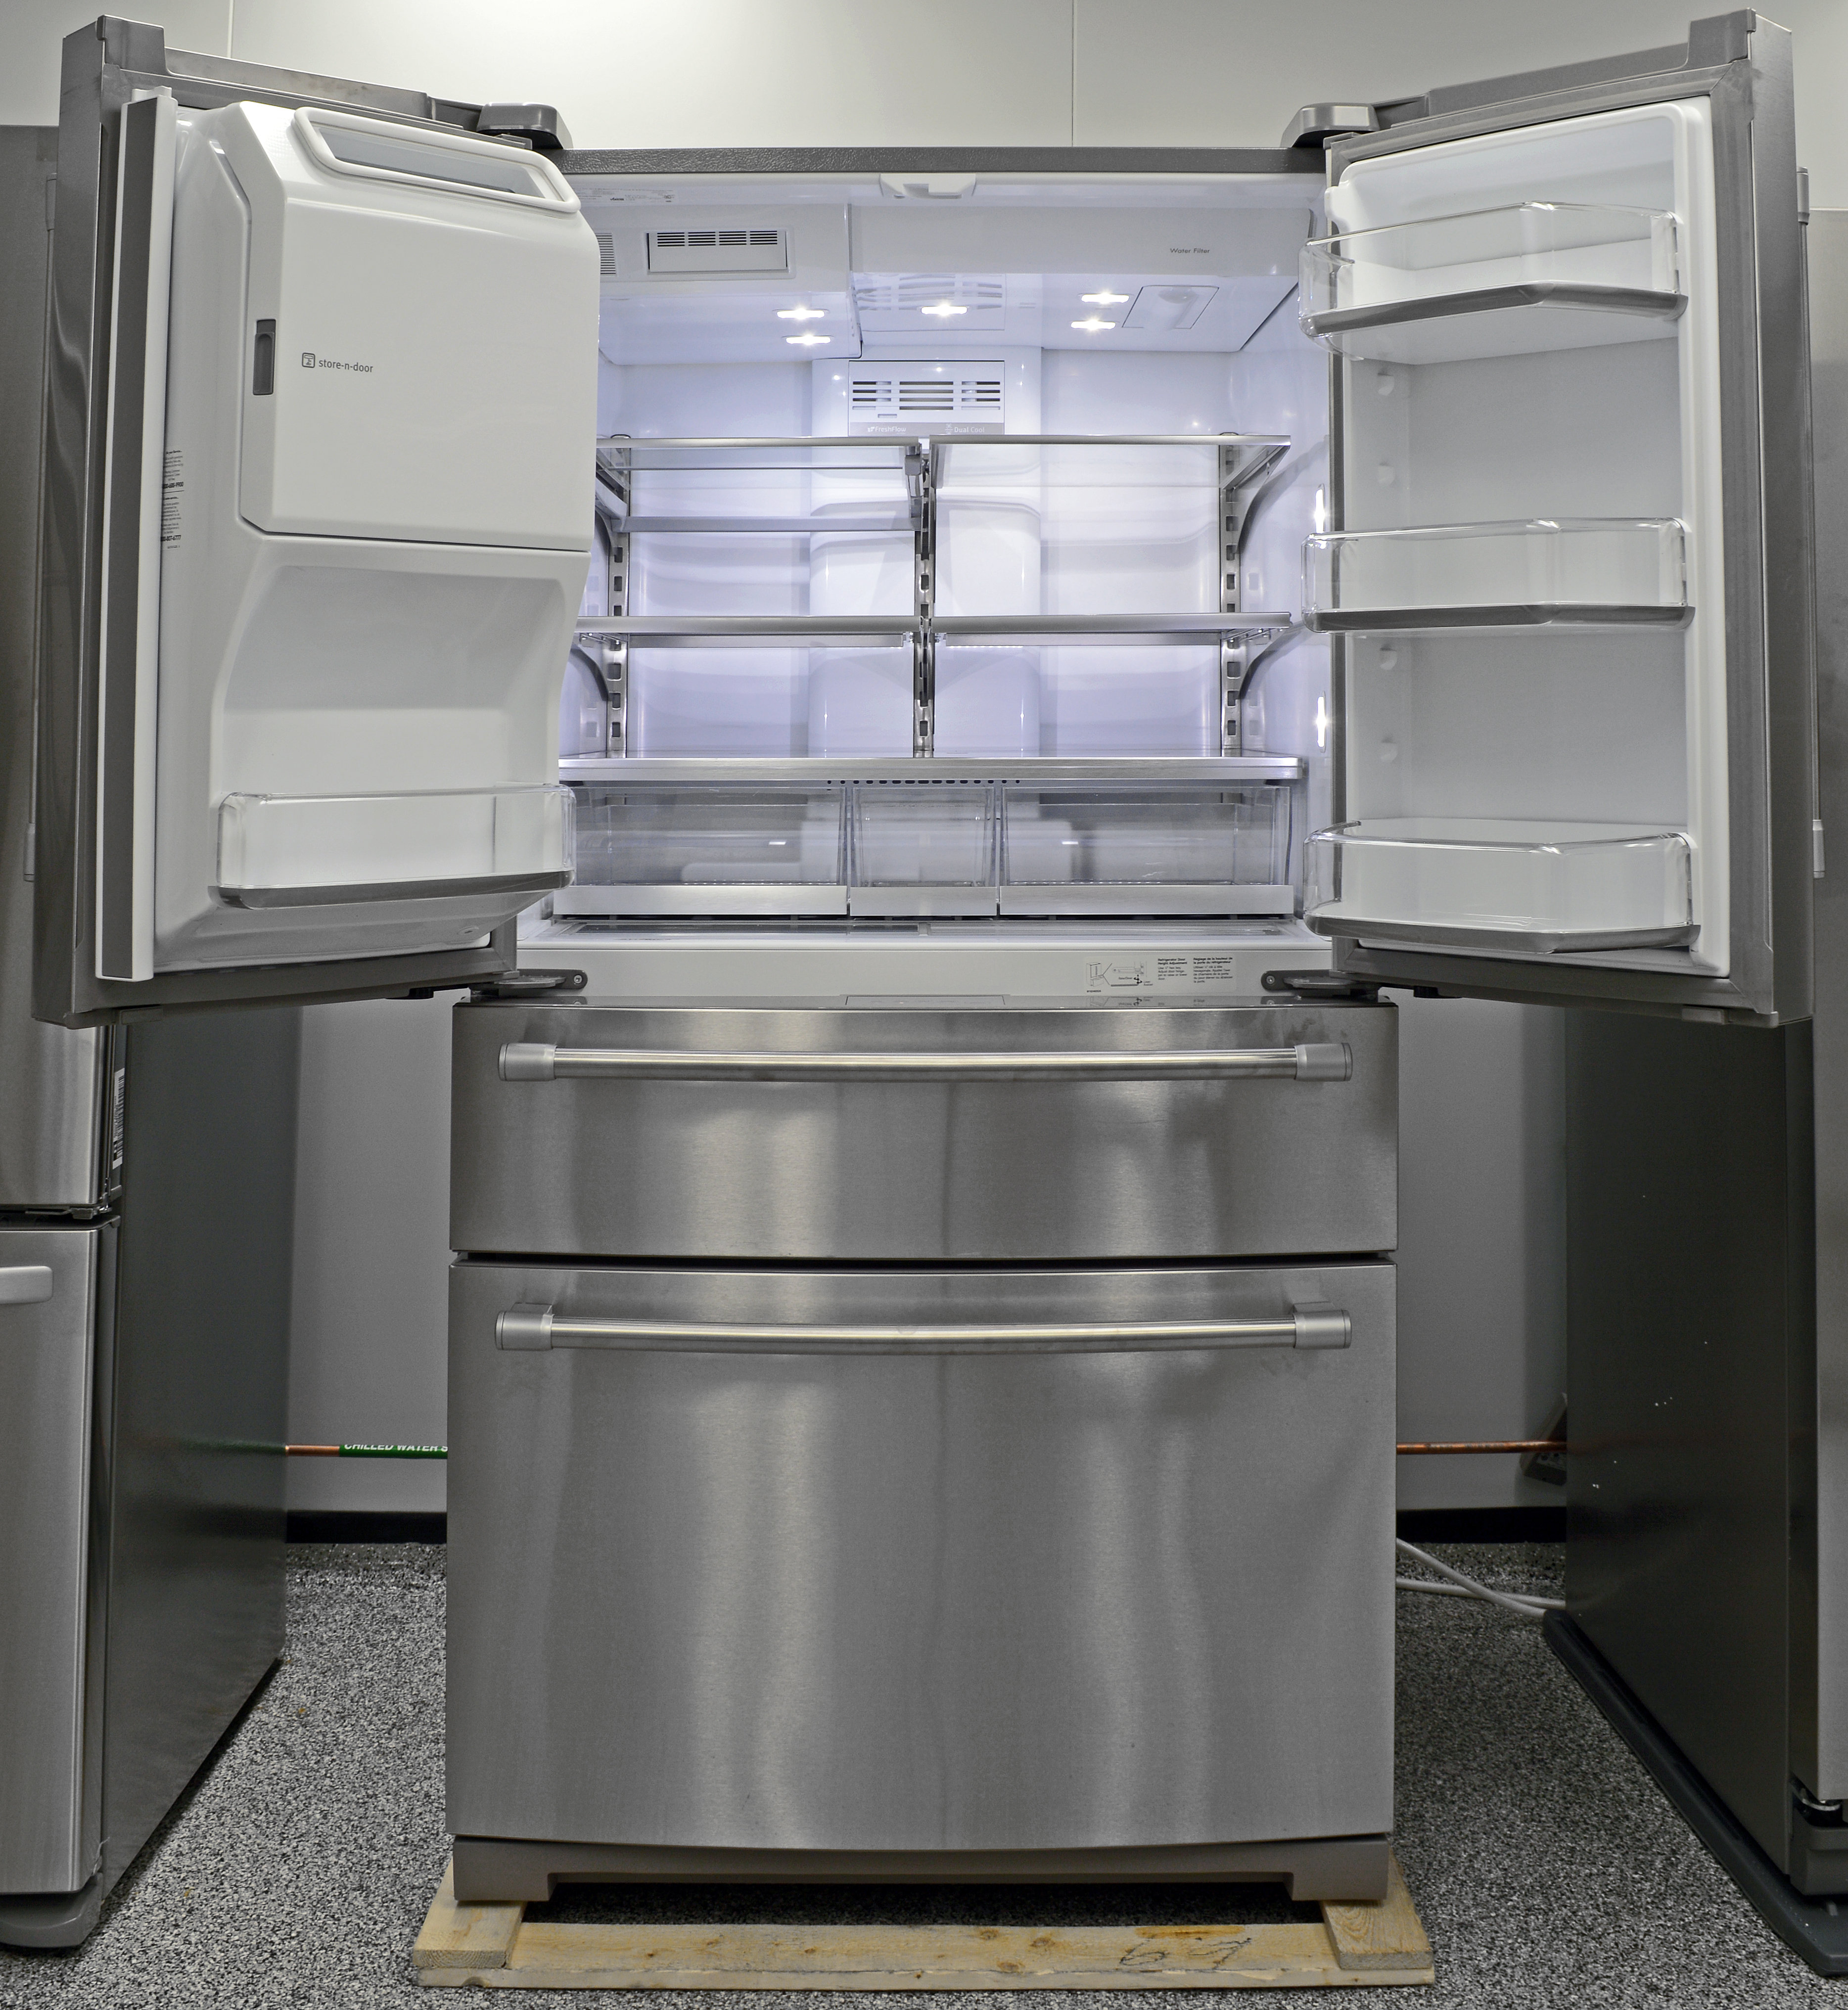 The Maytag MFX2876DRM has multiple drawers, stainless shelves, and spacious interiors—oh my!